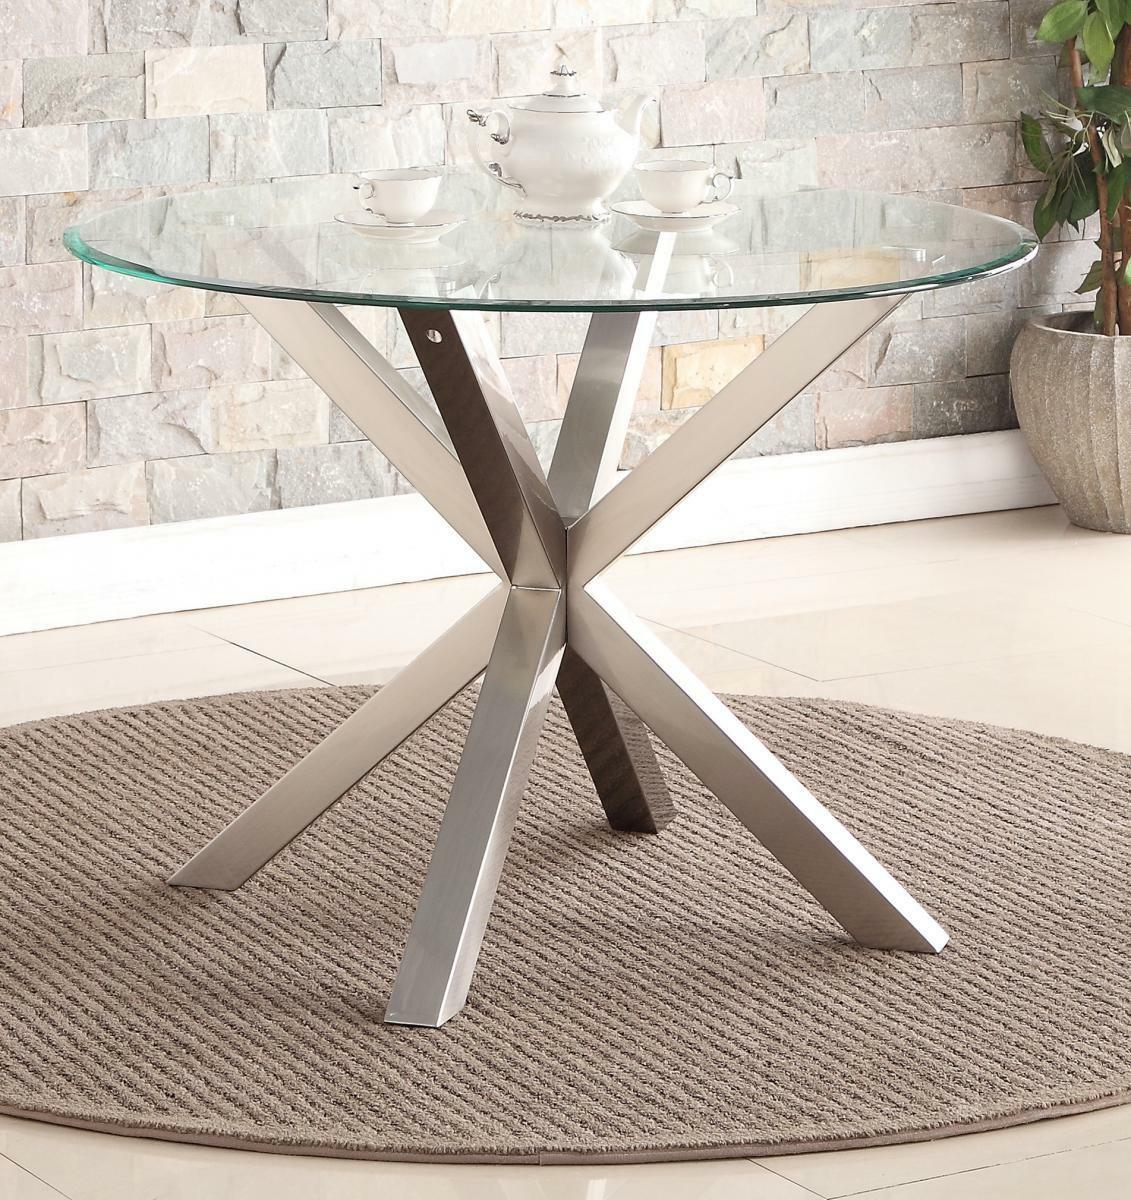 Dining Kitchen Table Round Clear Glass Top 110cm Brushed Stainless Steel Legs Ebay